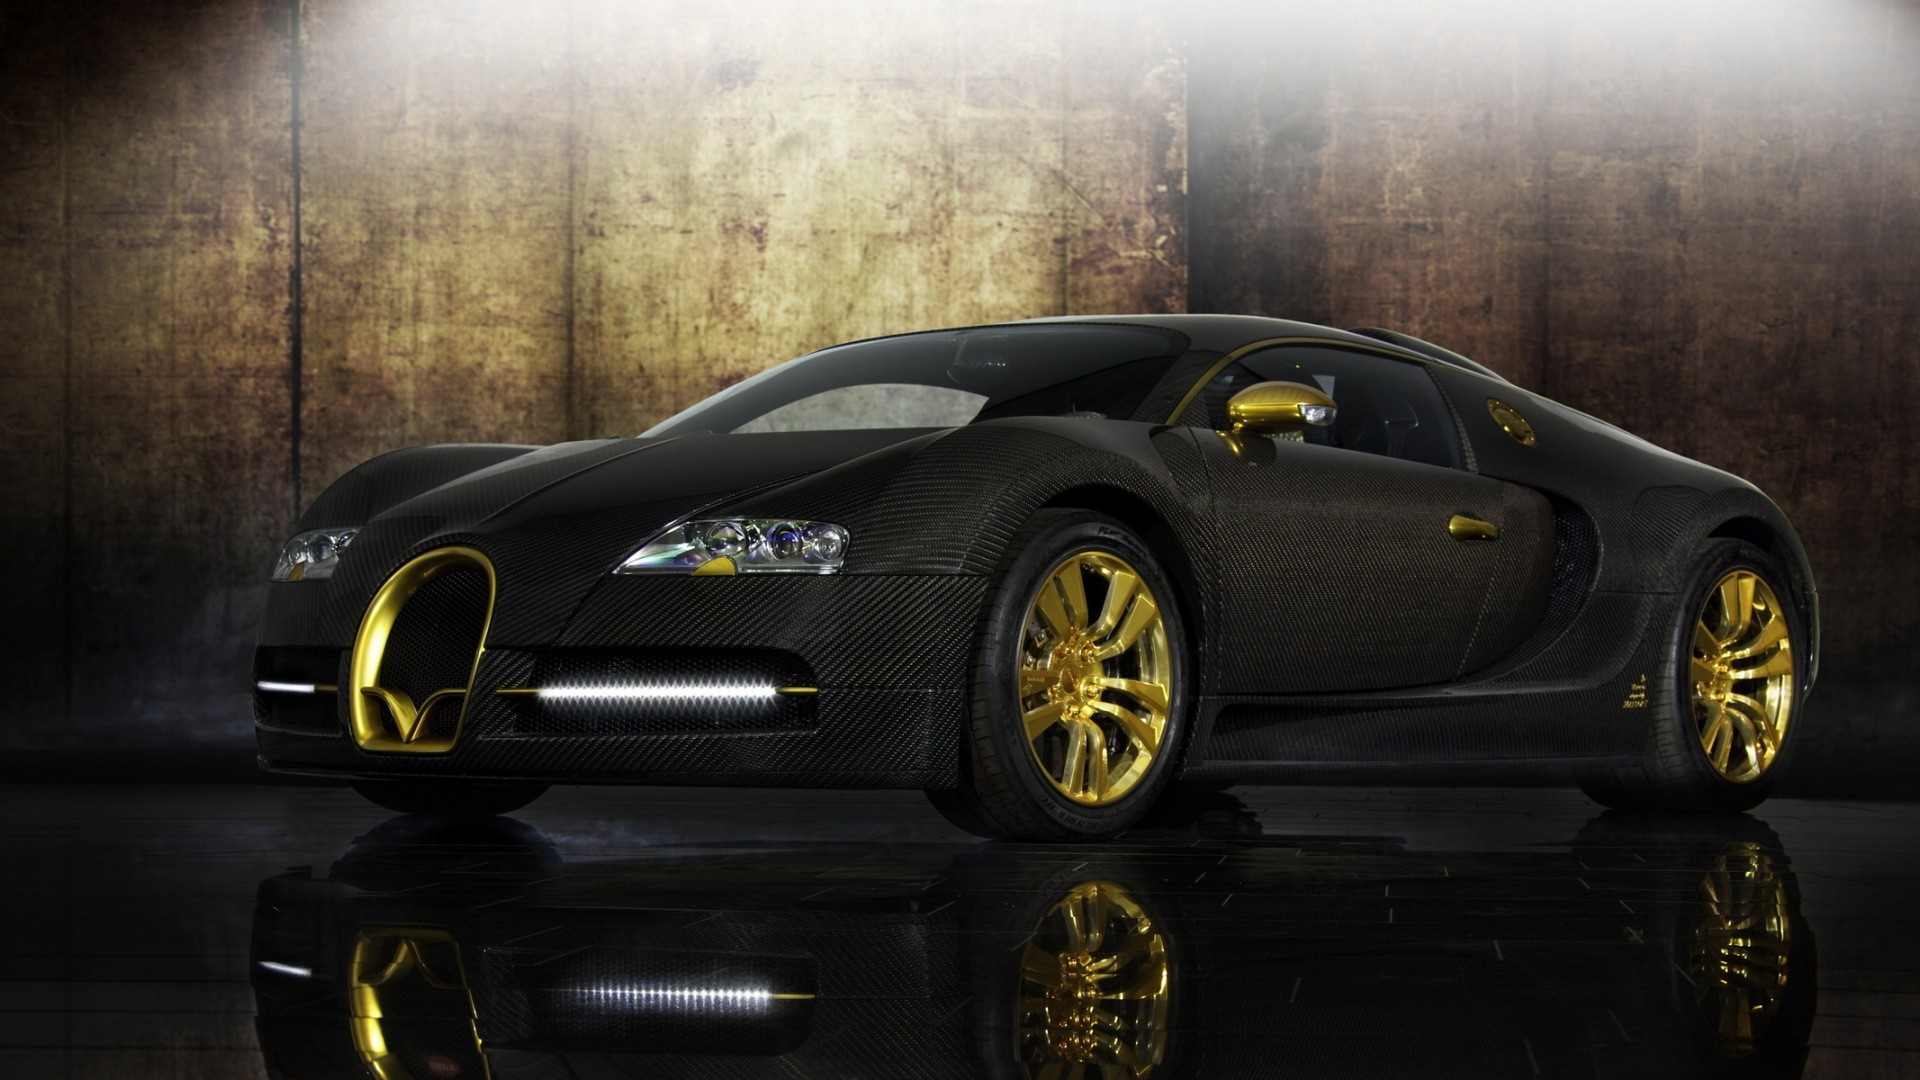 Bugatti Veyron car, photo wallpaper